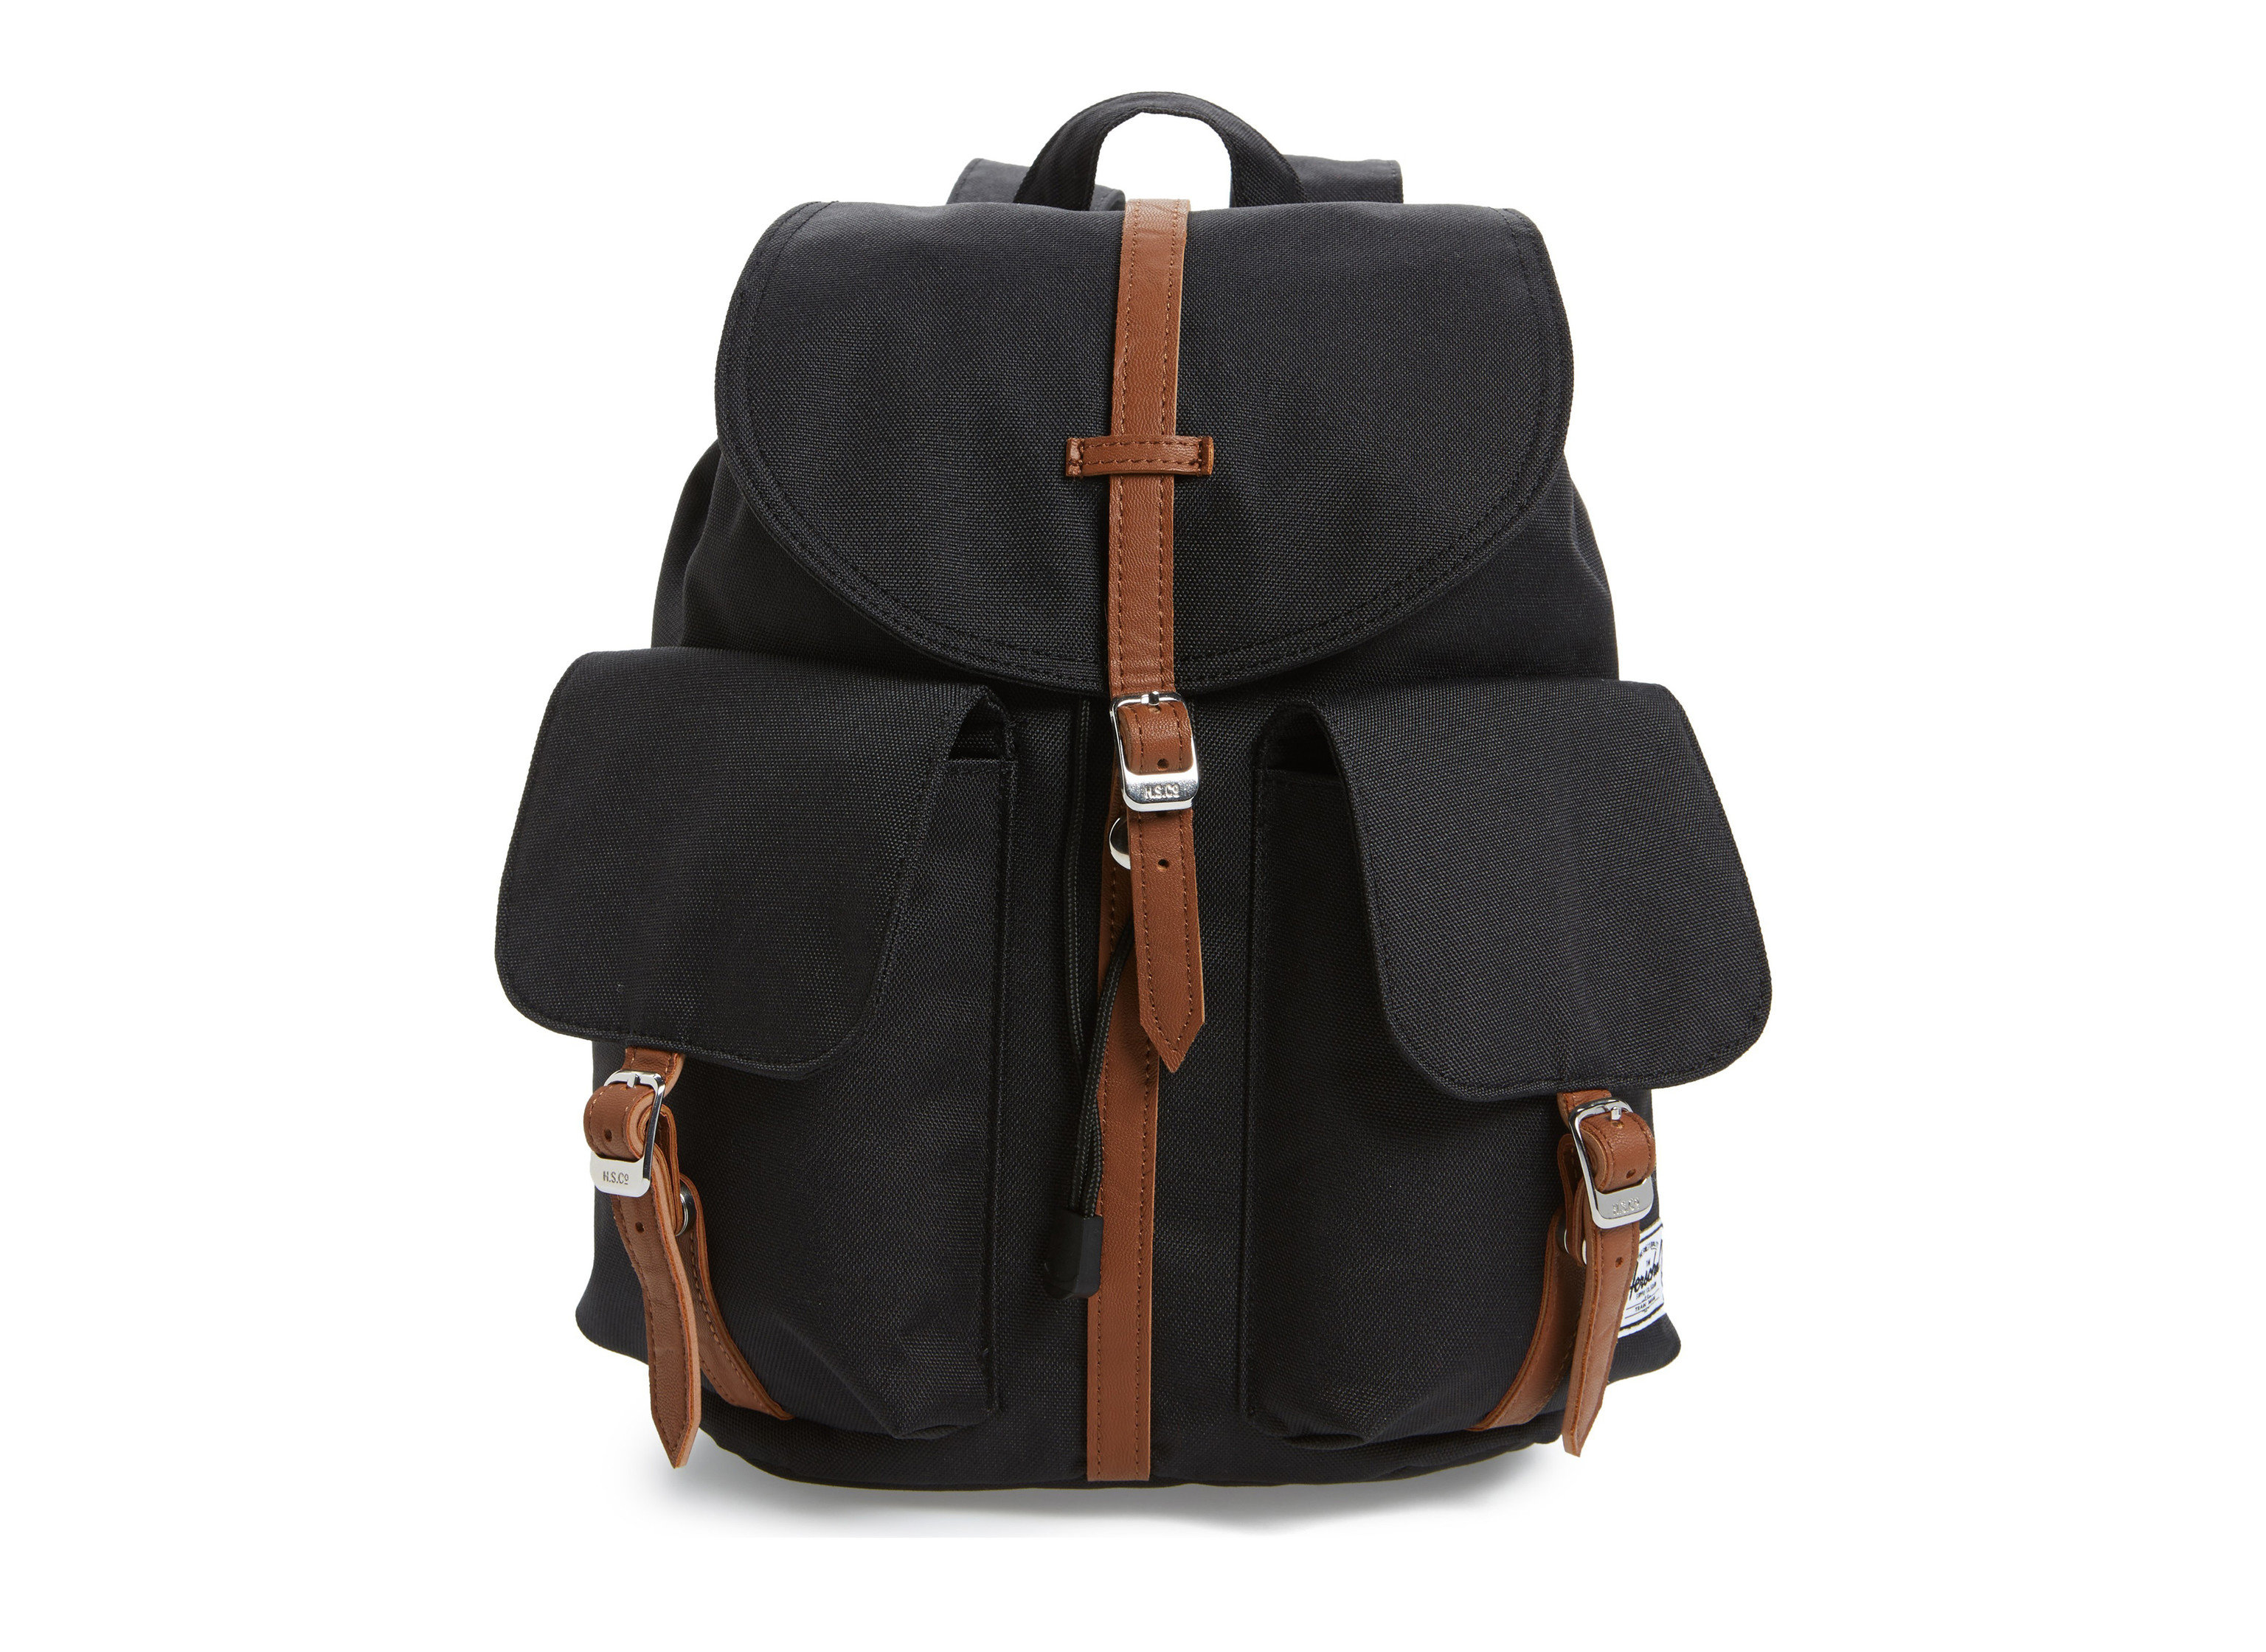 Style + Design bag product leather backpack product design accessory luggage & bags hand luggage baggage